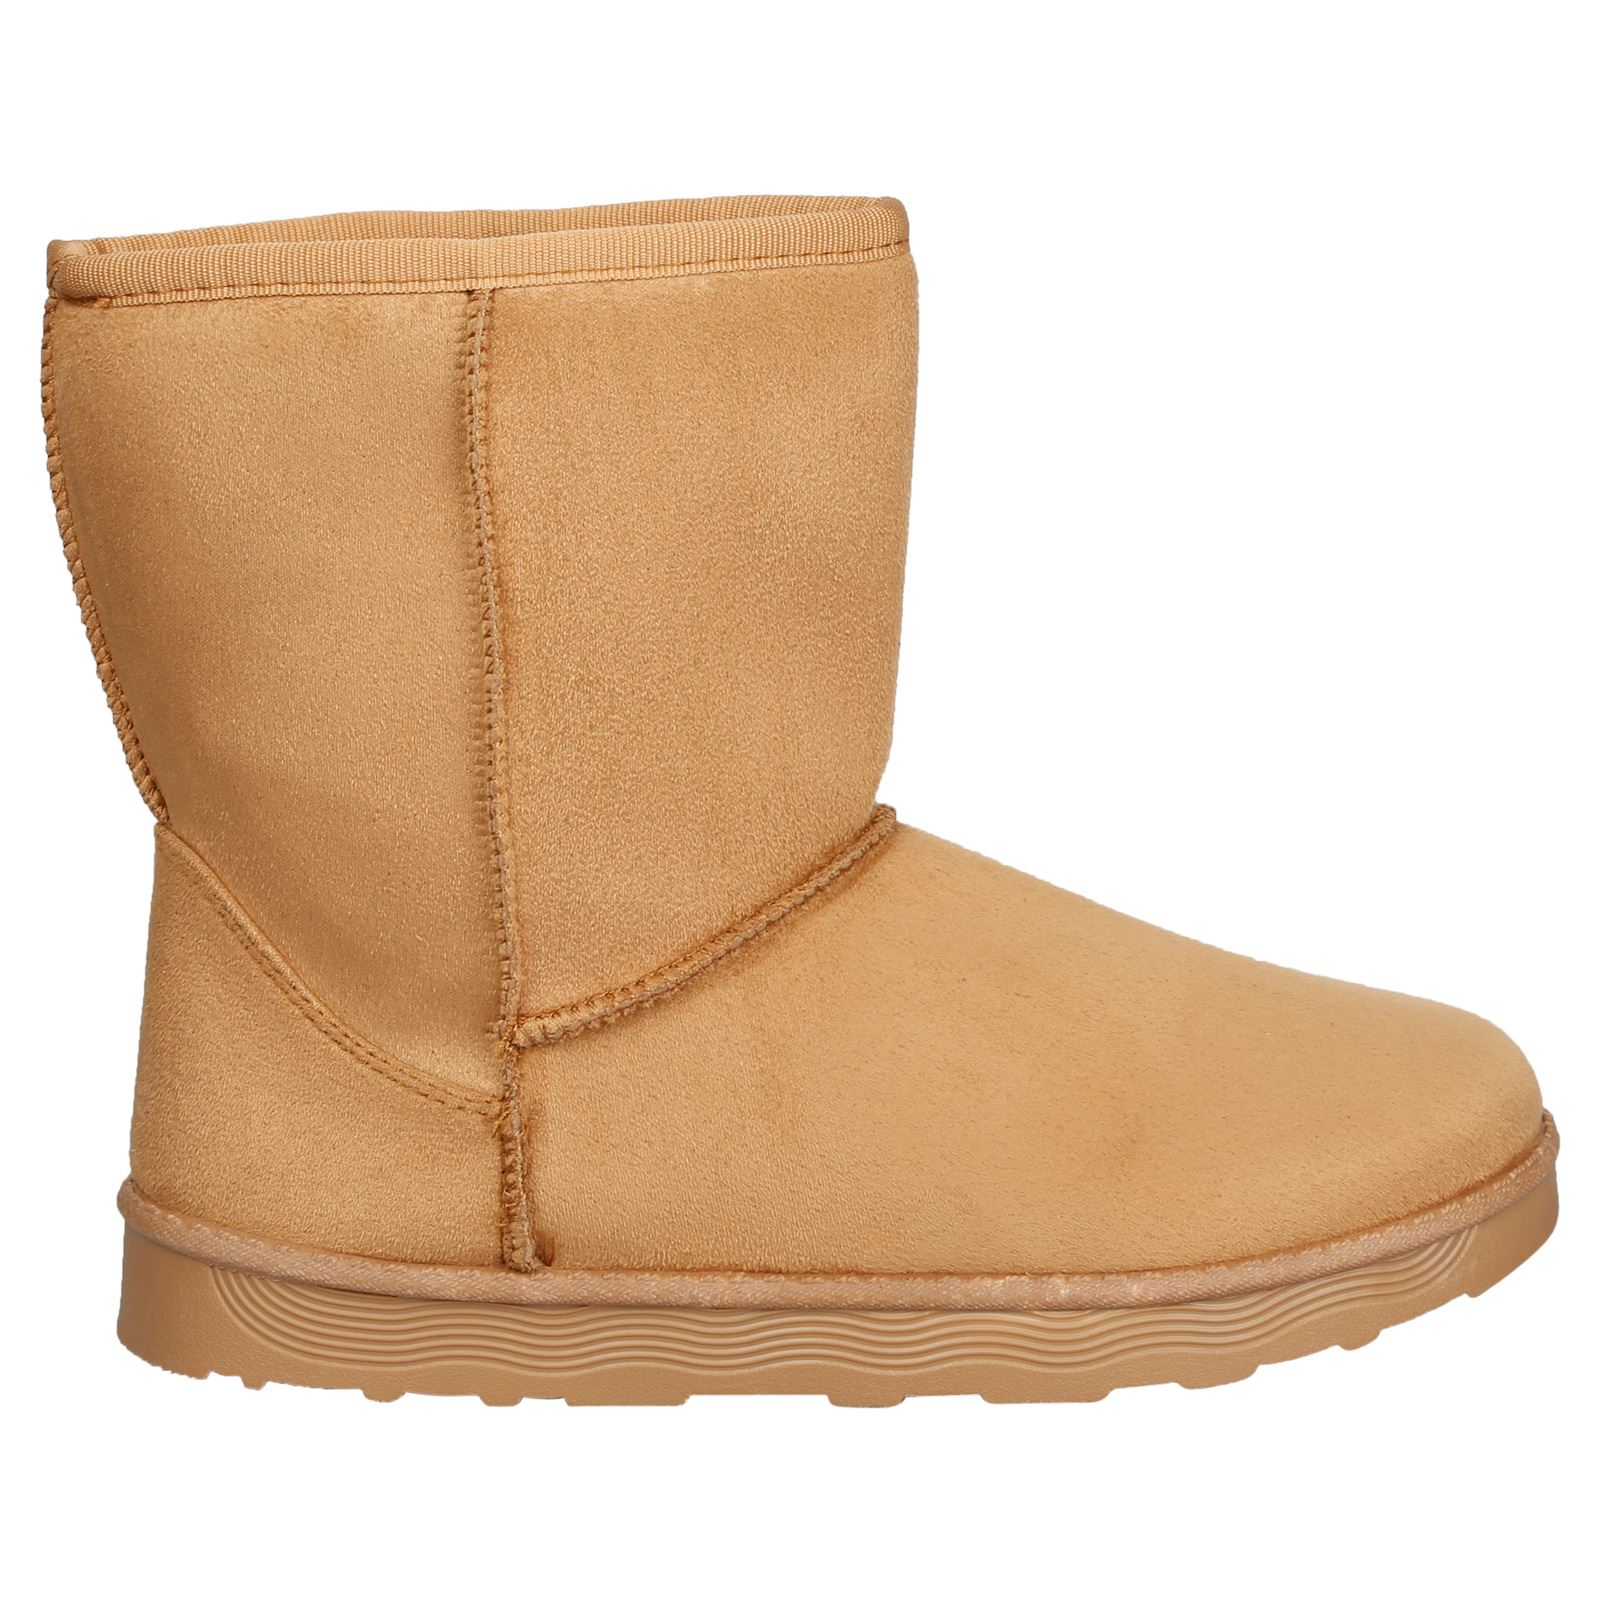 Paisleigh-Womens-Platfrom-Flat-Fur-Lined-Pull-On-Snug-Snow-Boots-Casual-Ladies thumbnail 7